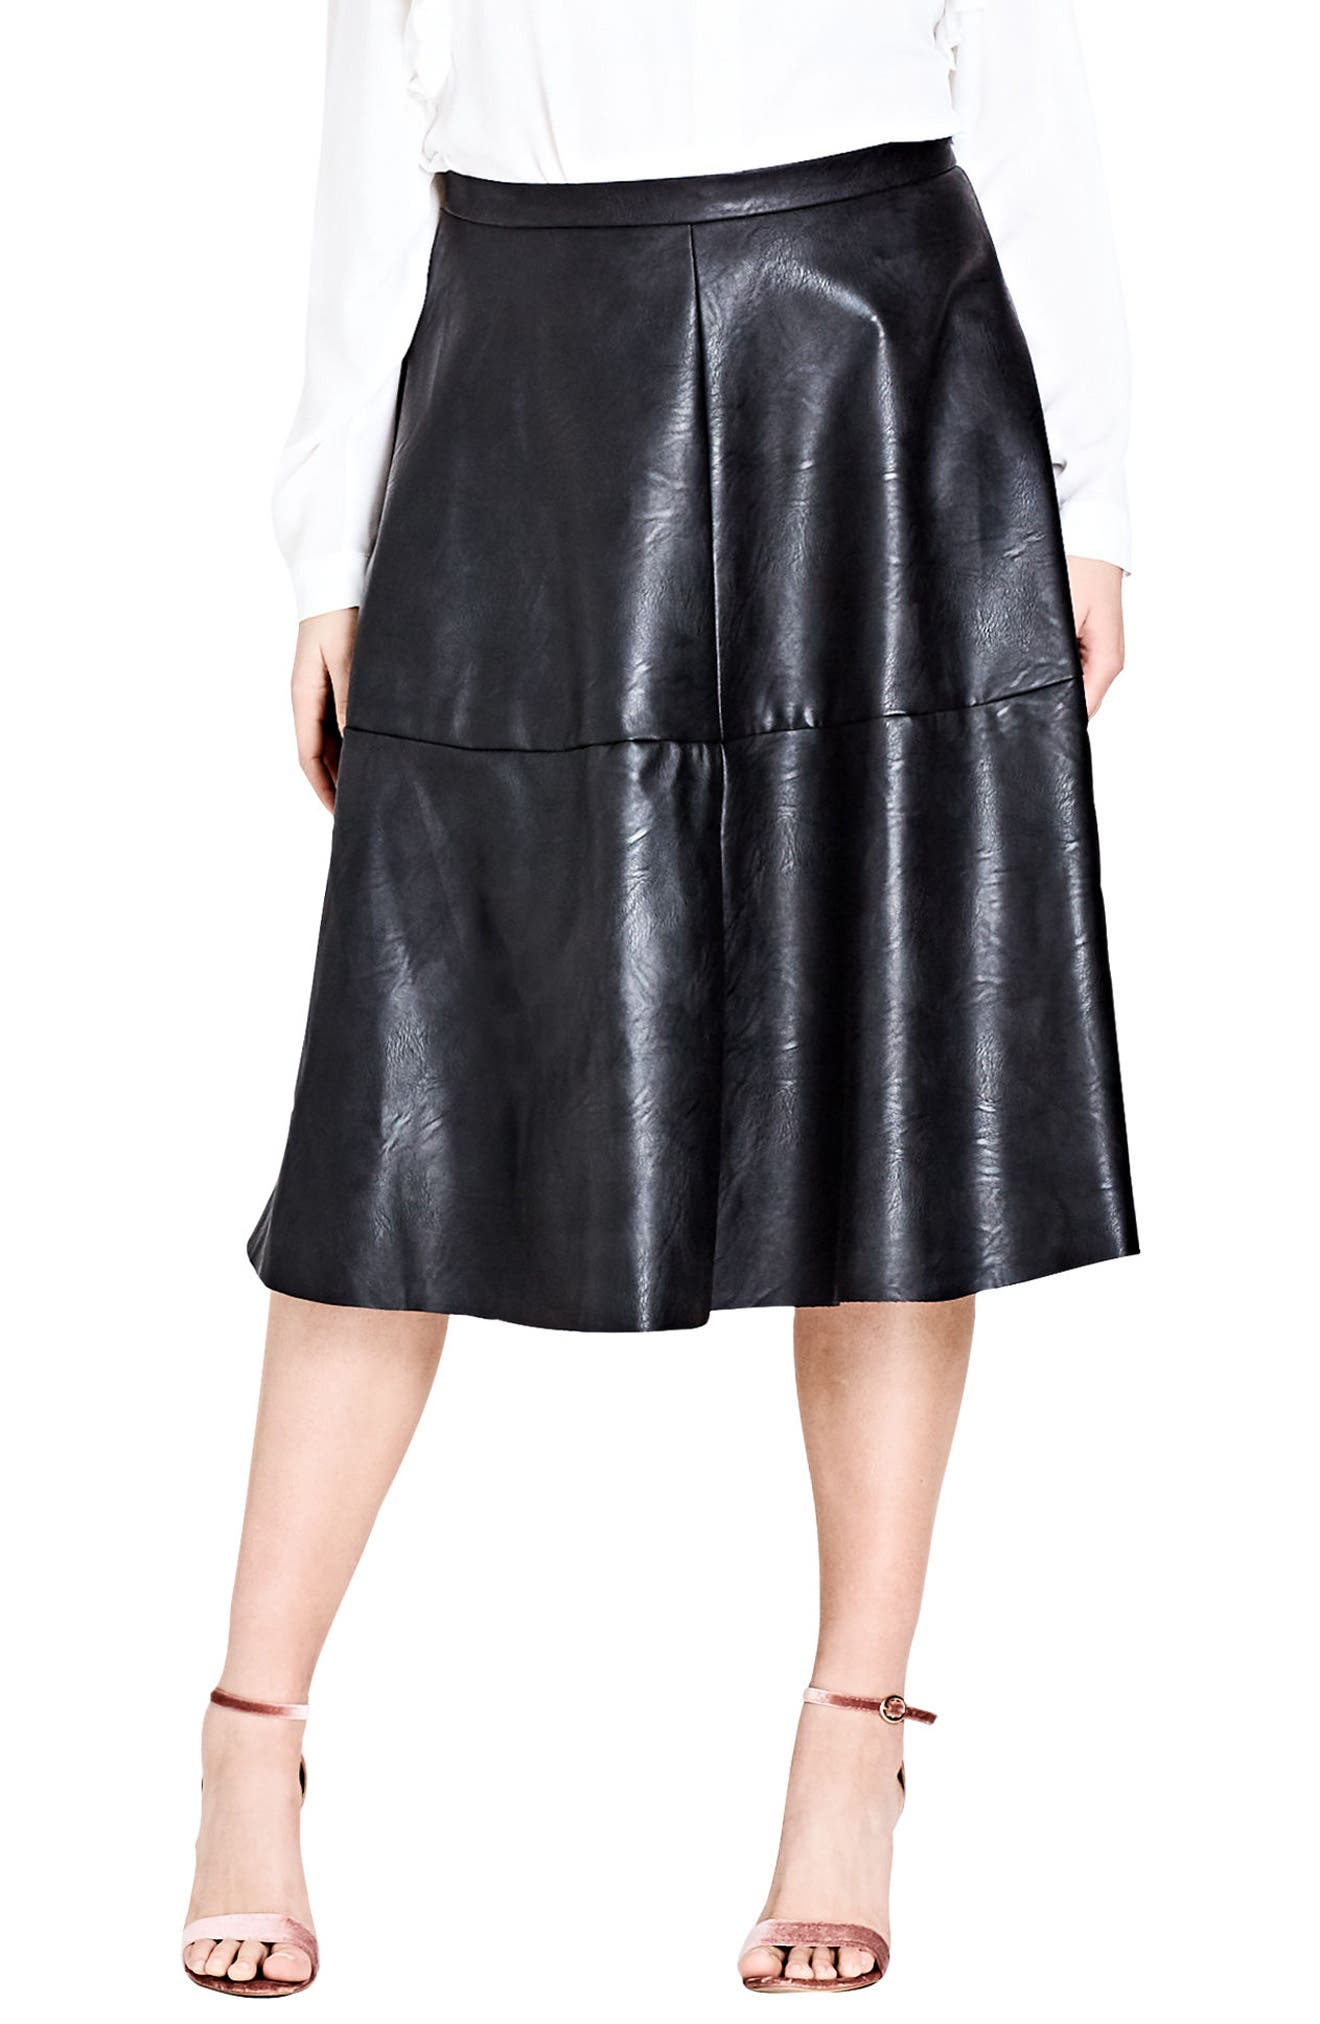 Alternate Image 1 Selected - City Chic Faux Leather Skirt (Plus Size)